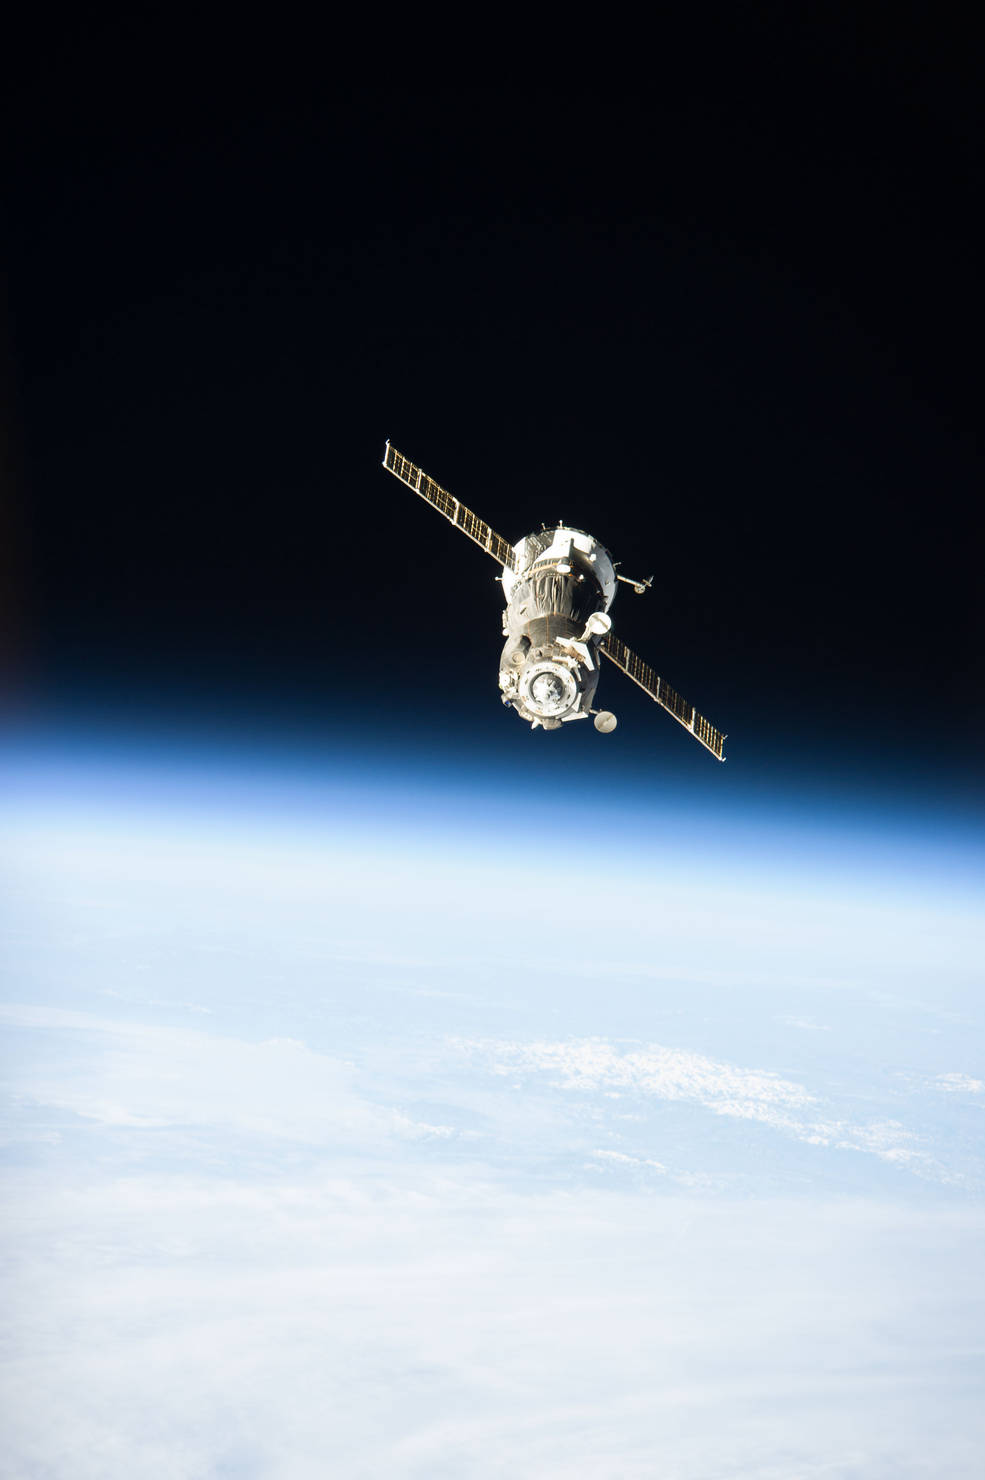 iss expedition 37 - photo #28